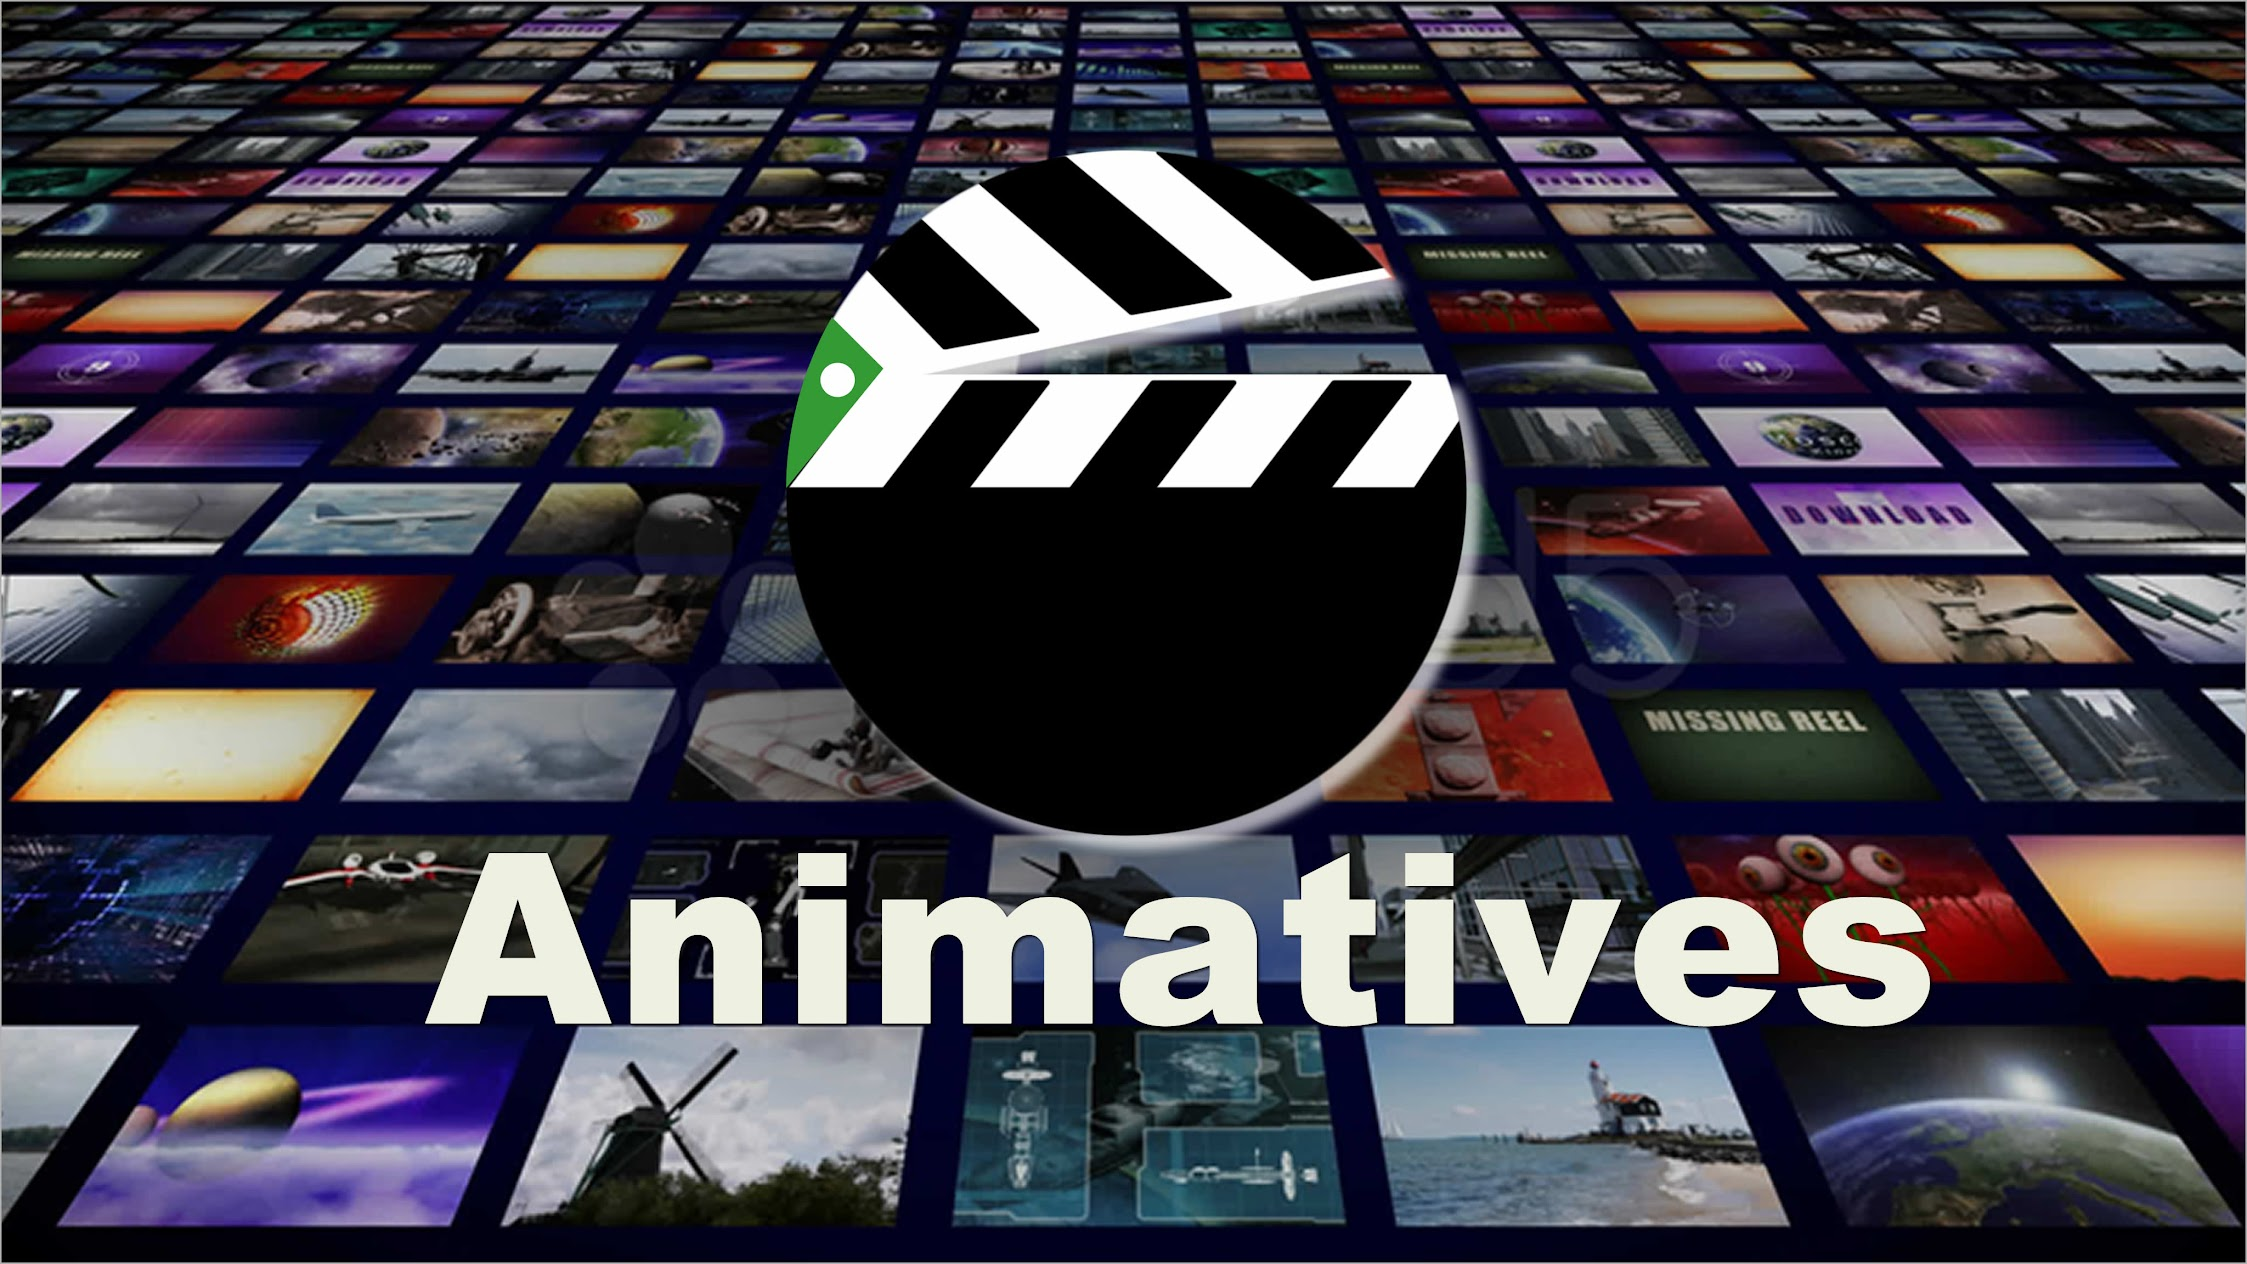 Animatives